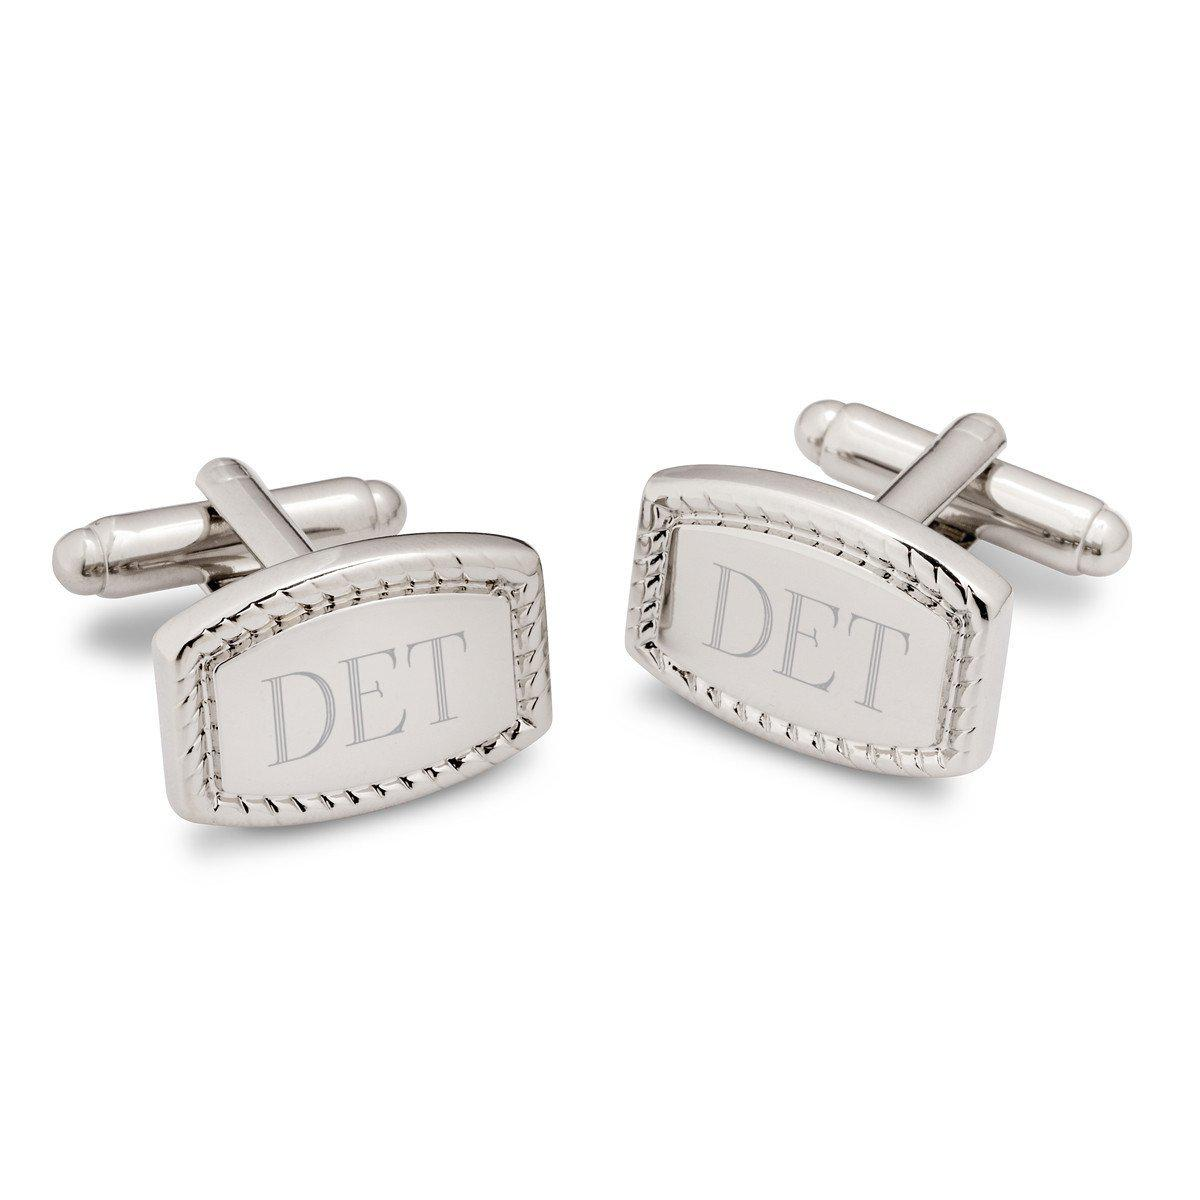 Personalized-Beaded-Rectangular-Cufflinks